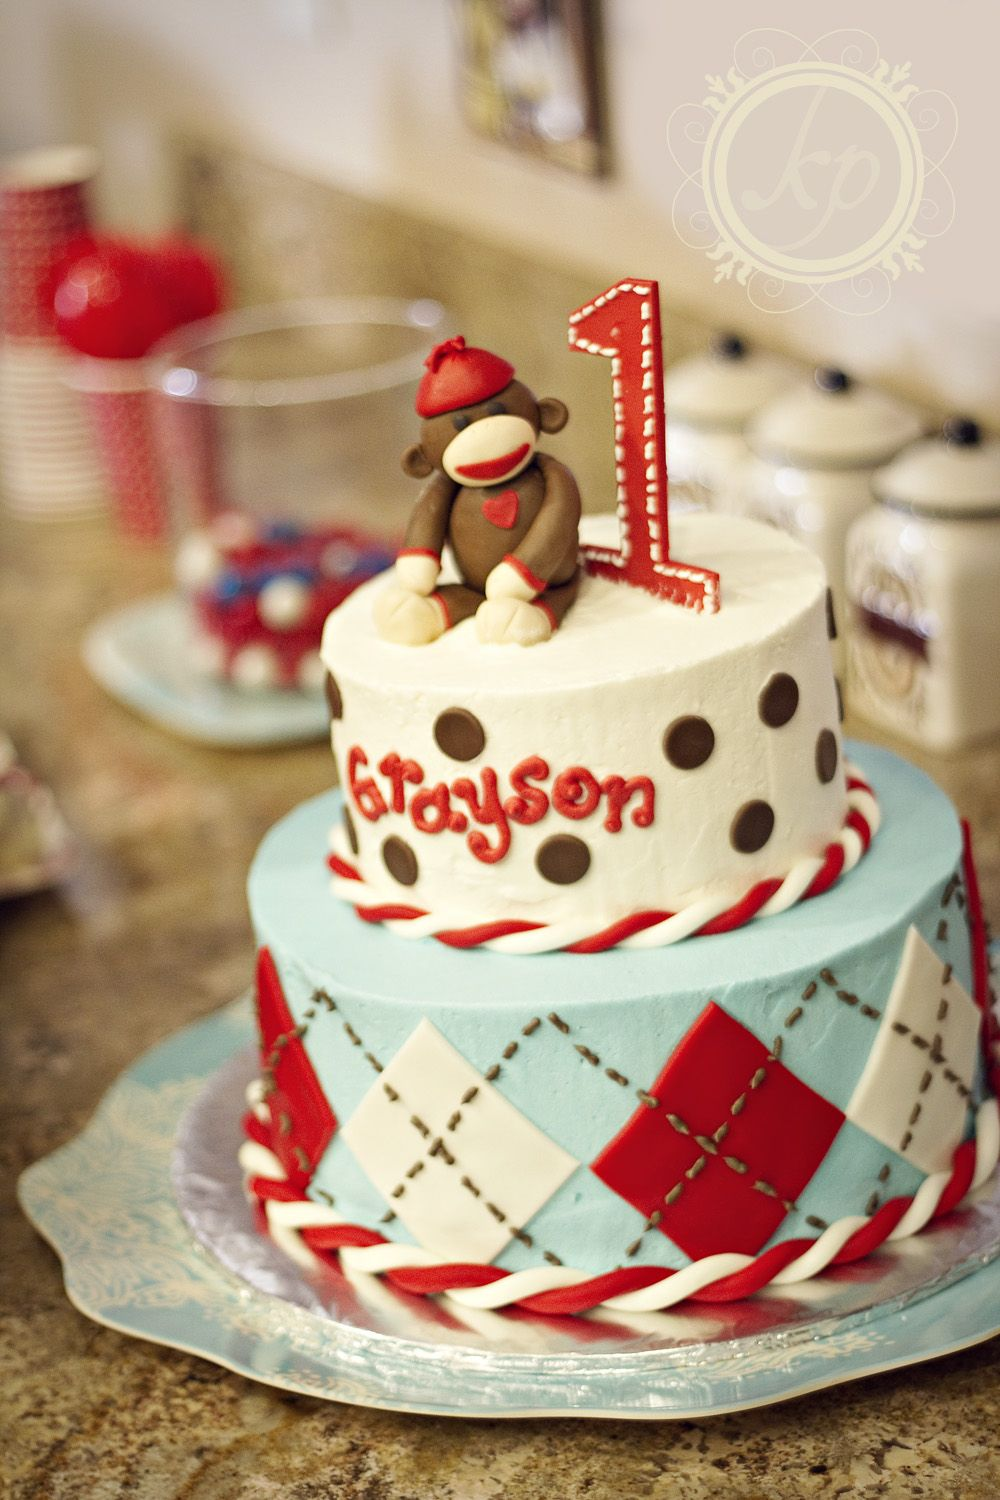 Sensational Sock Monkey With Images Sock Monkey Cakes Birthday Cake Kids Funny Birthday Cards Online Barepcheapnameinfo